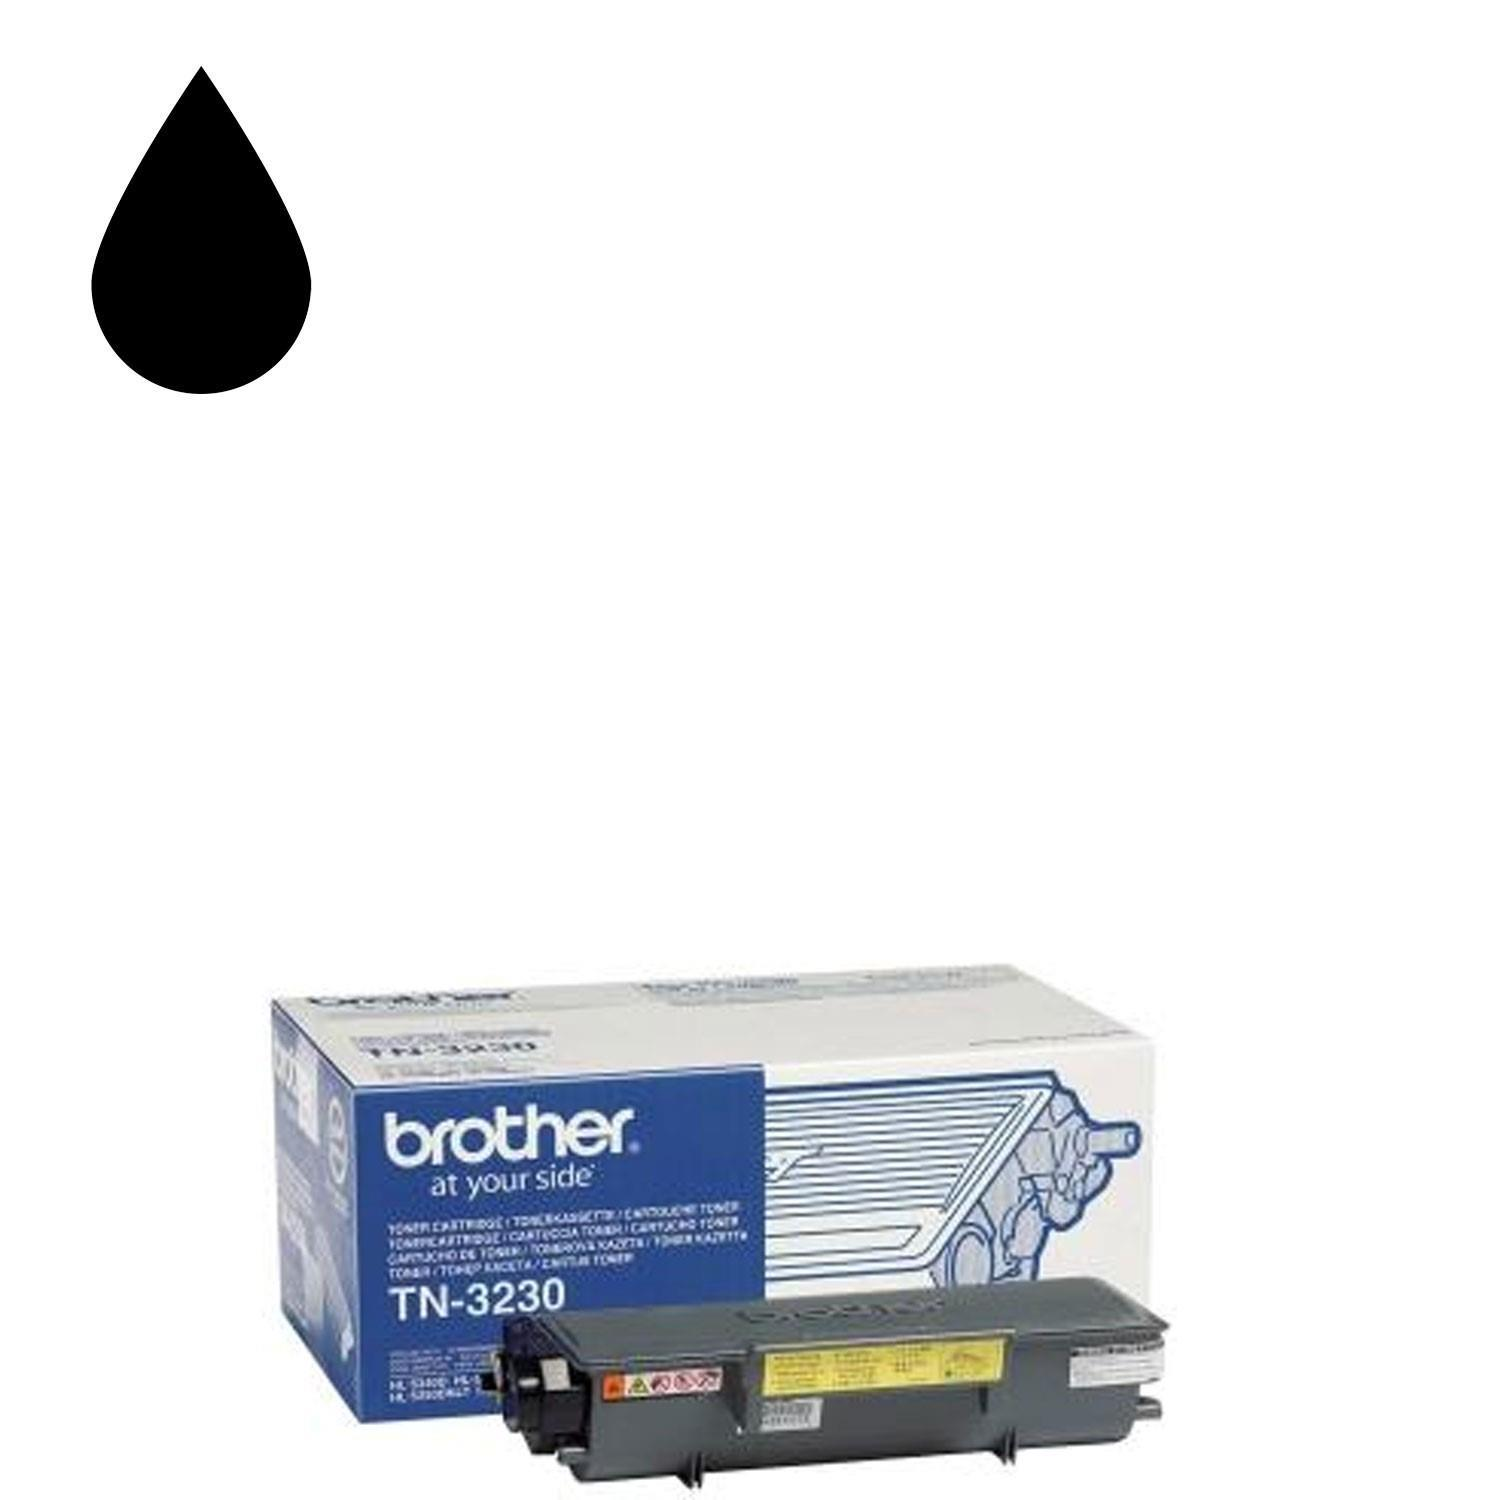 Brother TN-3230 Toner Cartridge - Black